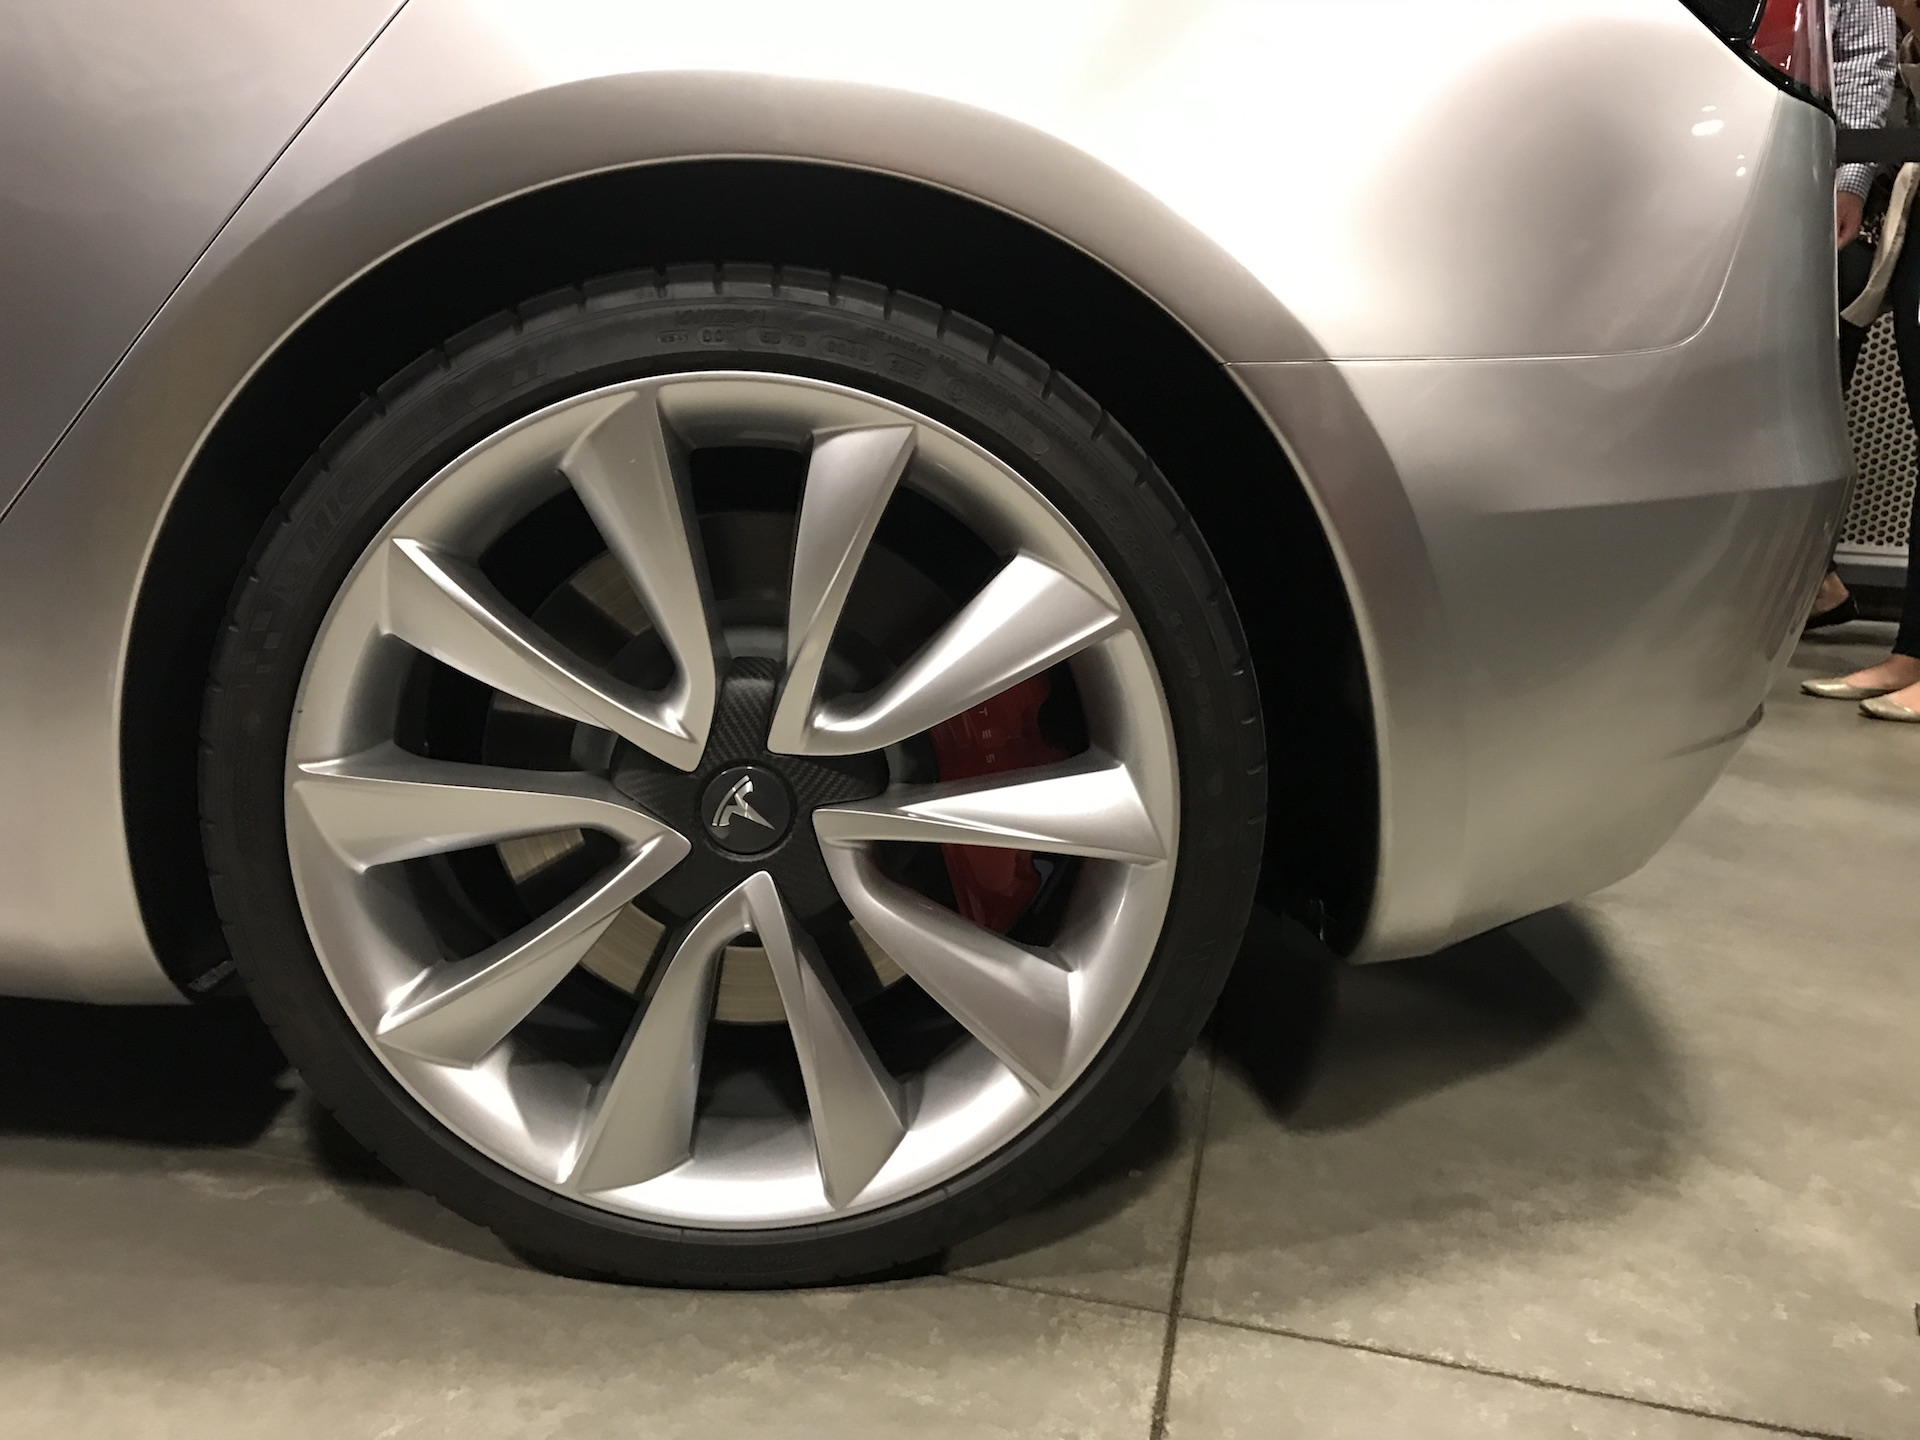 Silver Tesla Model 3 carbon center wheel at the Avaya Stadium [Credit: ryaneager via imgur]